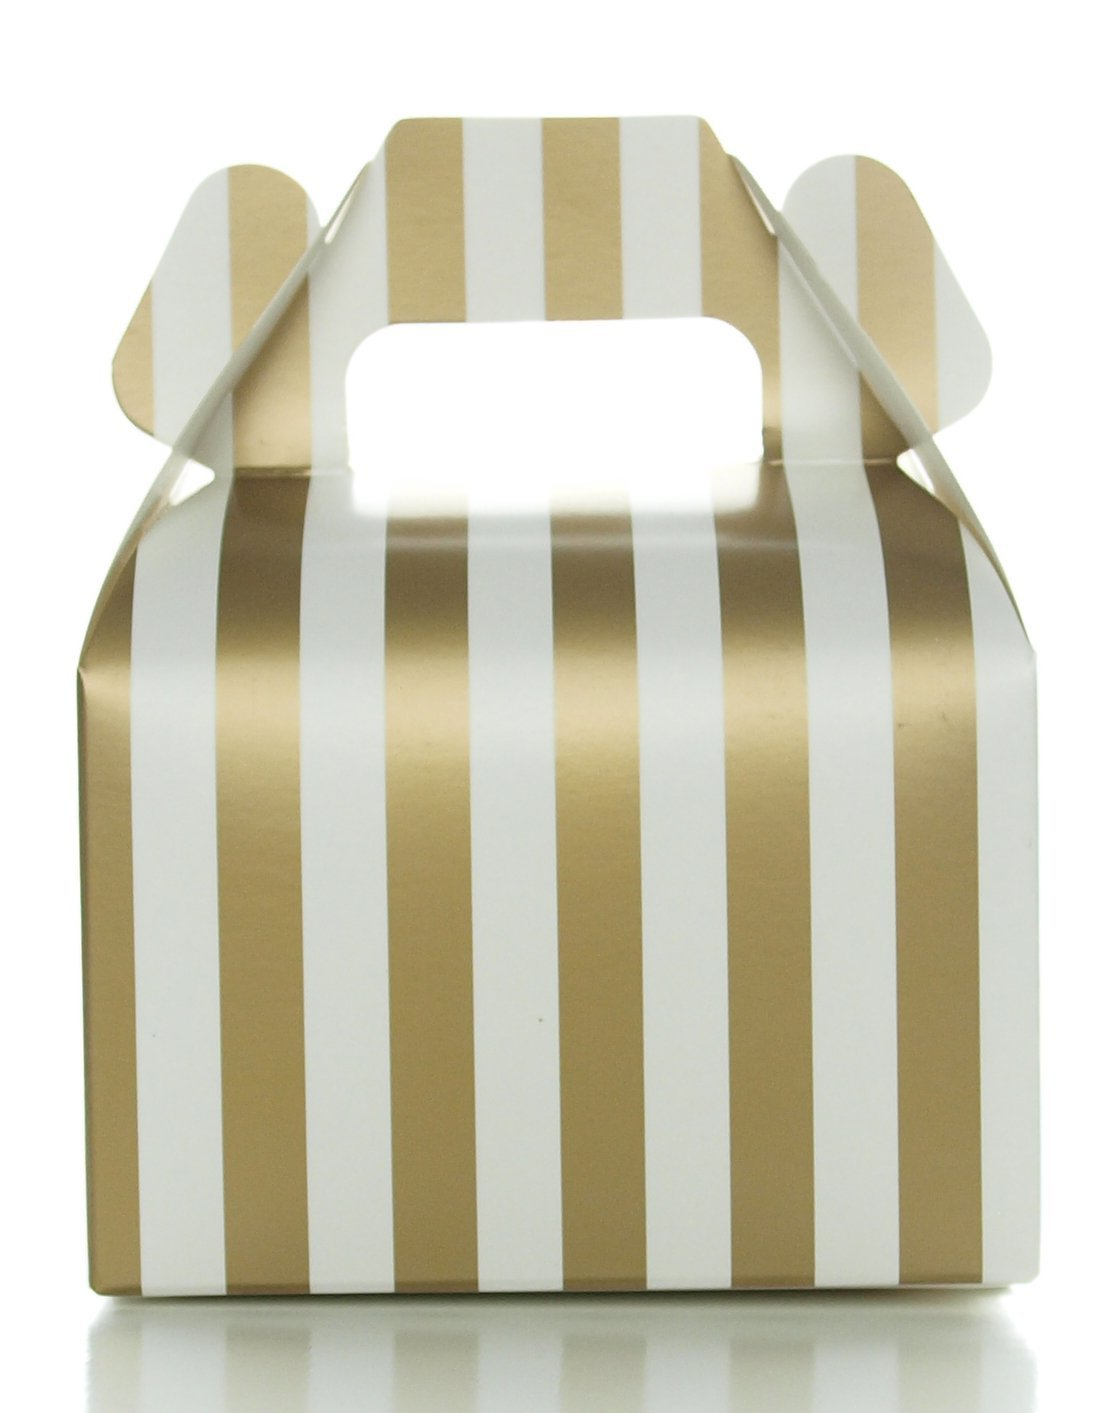 Amazon.com: Favor Candy Boxes Small Gable Gift Boxes, Gold Stripe ...